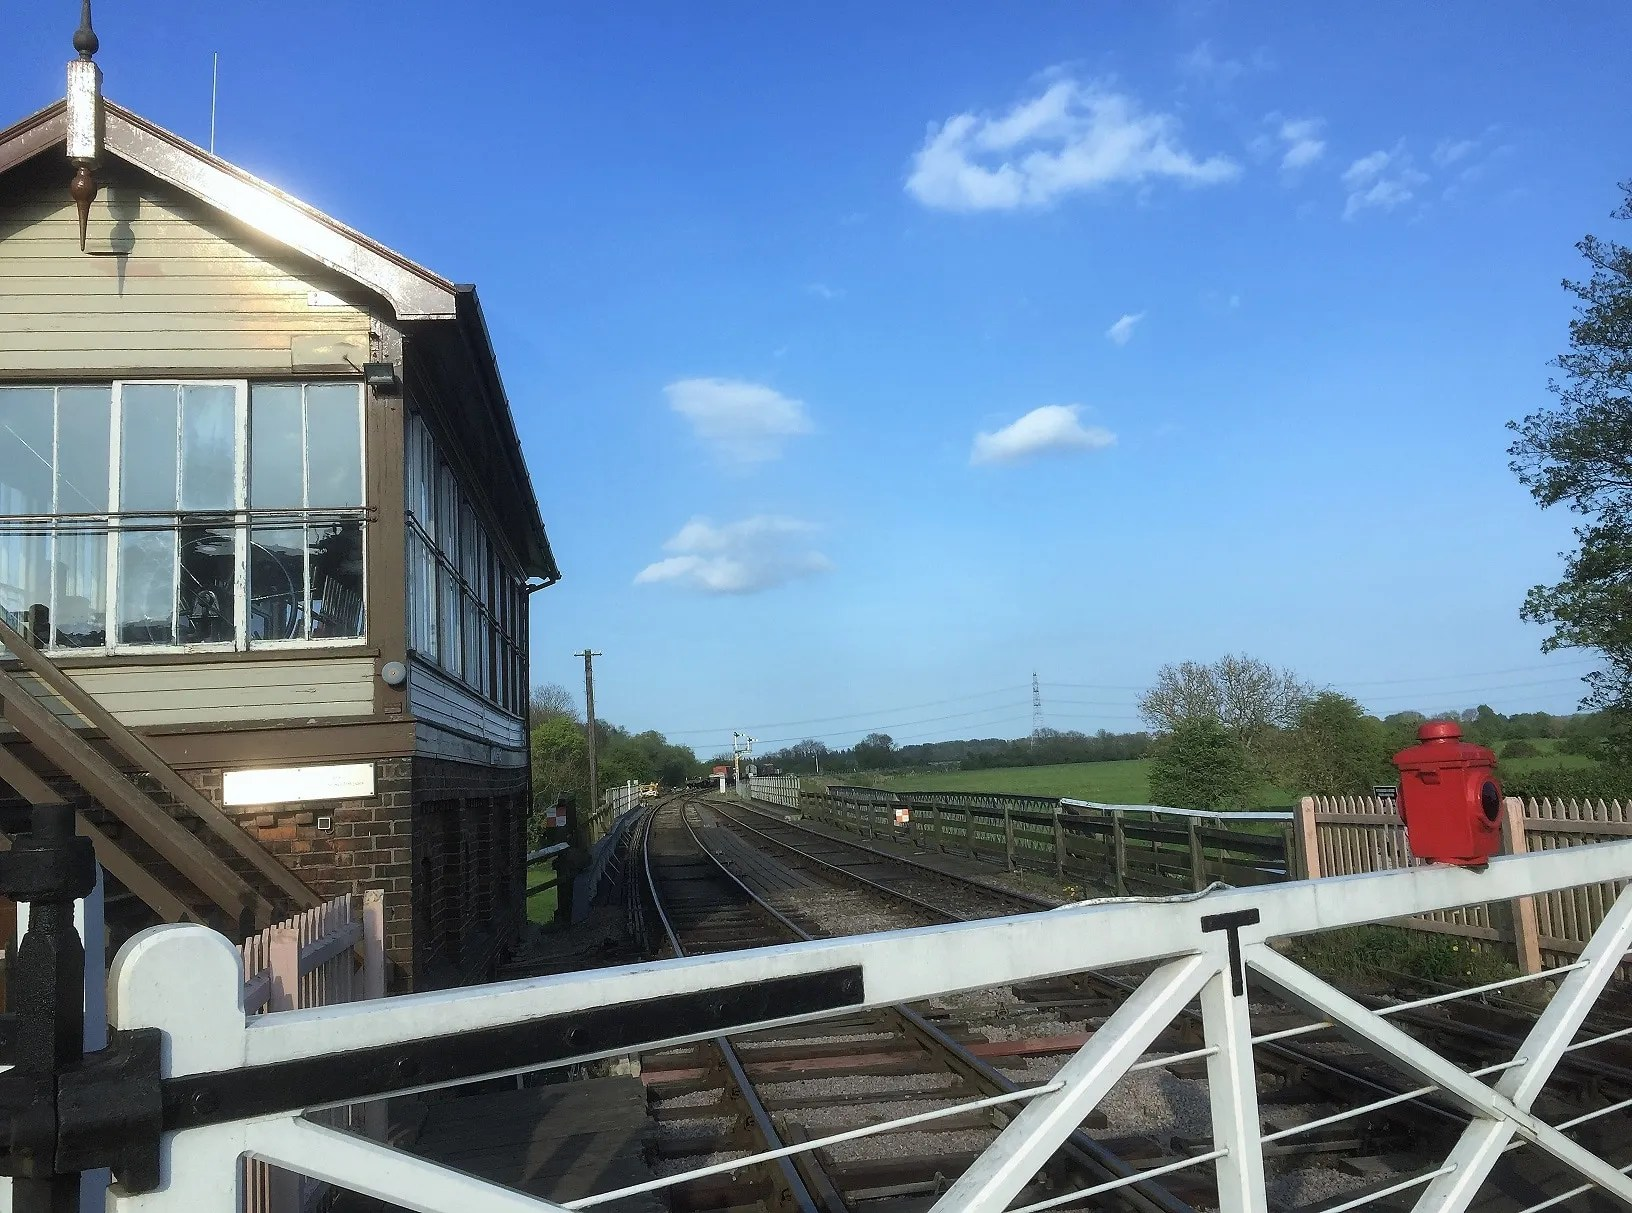 Wansford Signal Box on the Nene Valley Railway